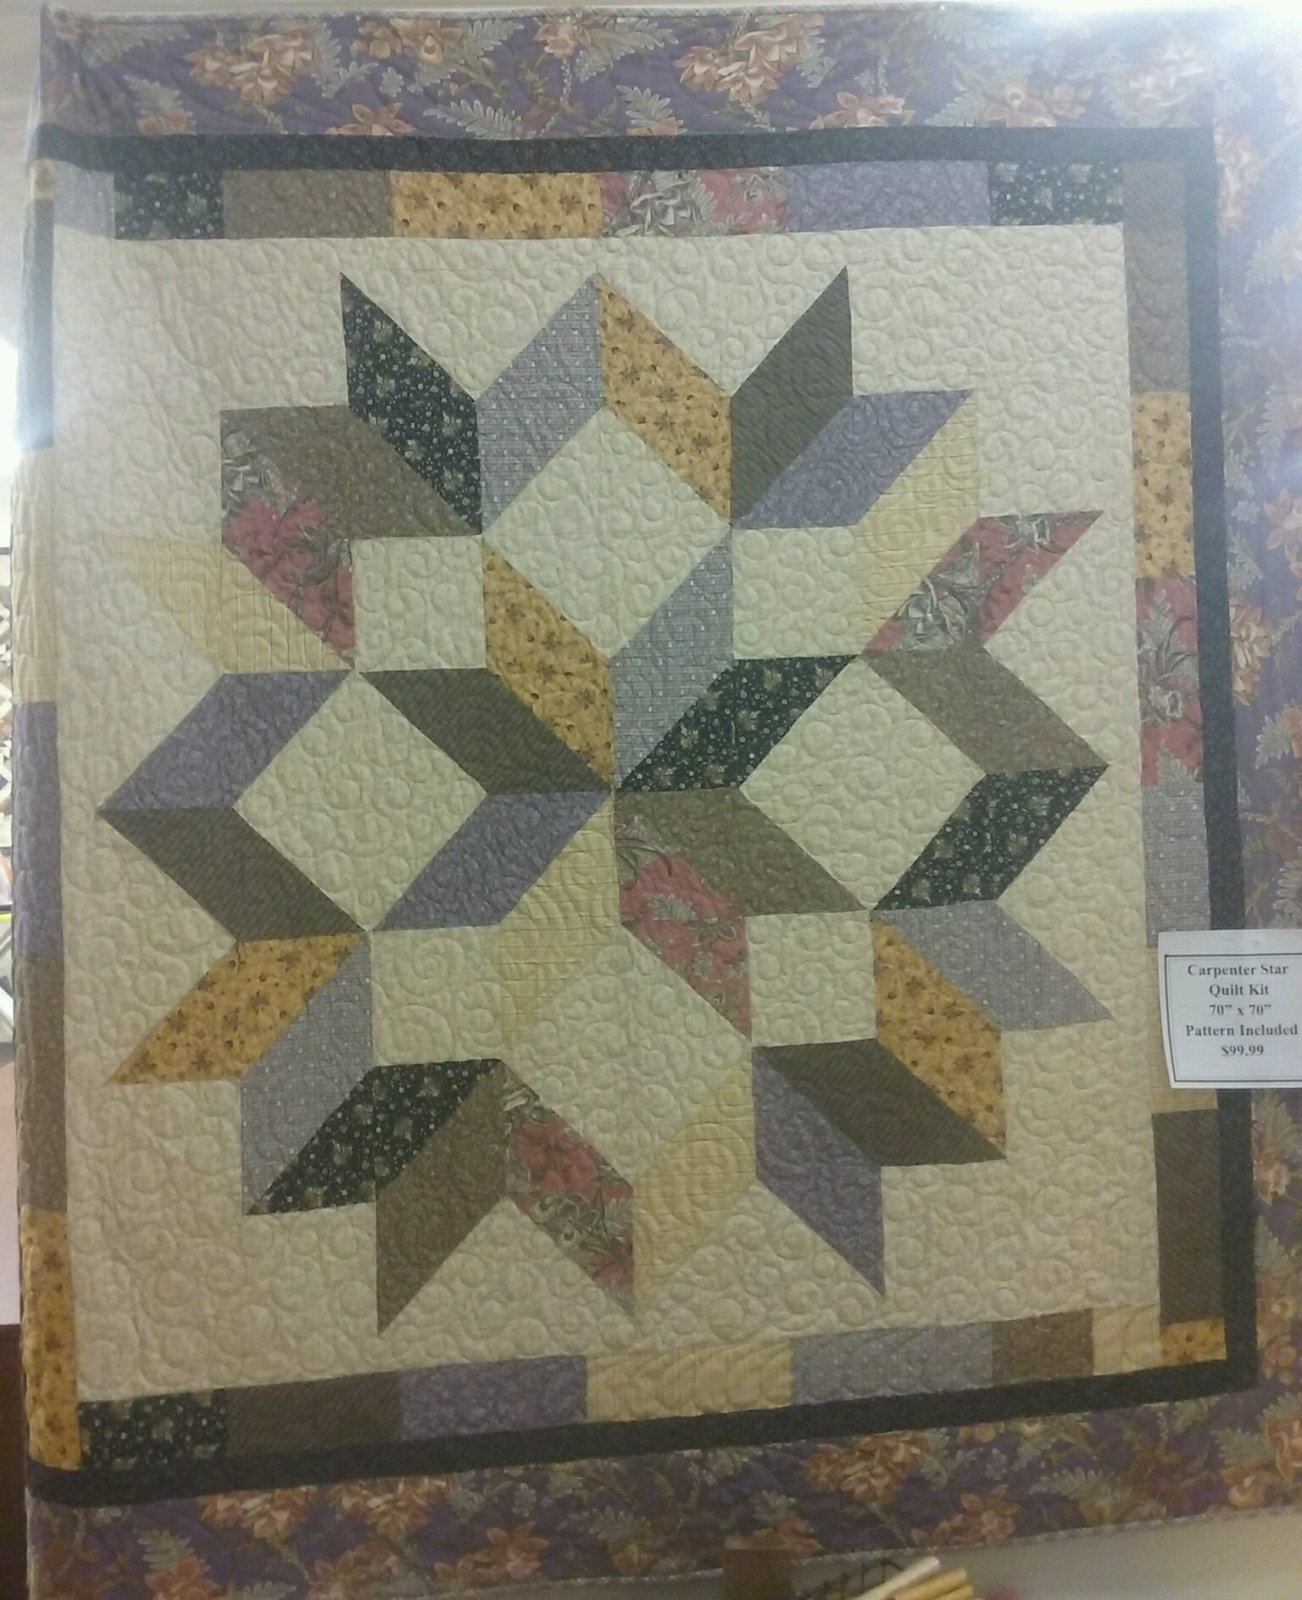 Carpenters Star Quilt Kit 70 X 70 Pattern Included